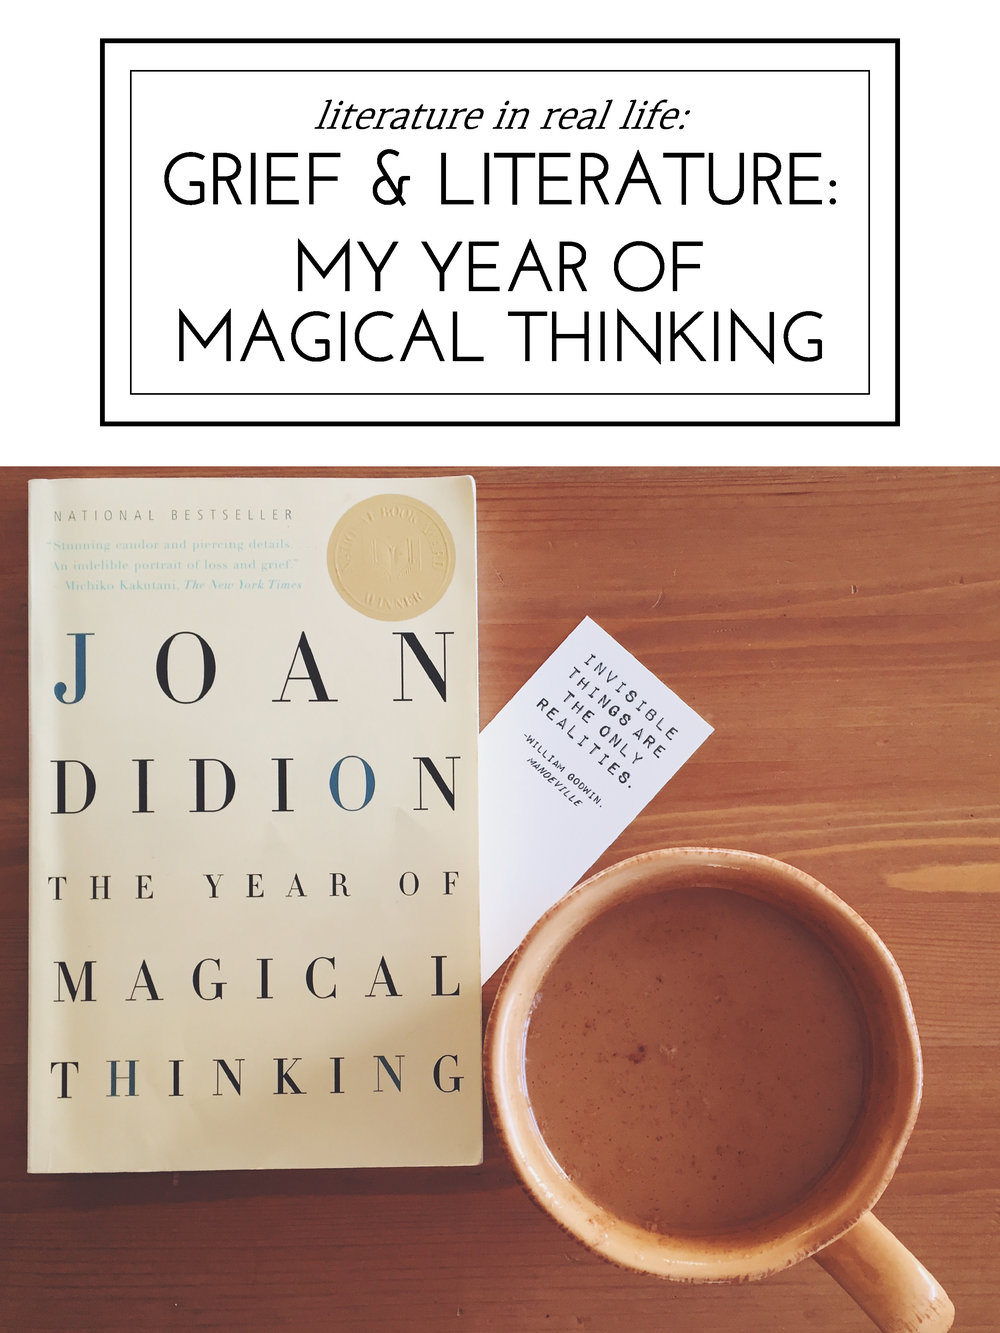 Literature in Real Life: Grief & Literature: My Year of Magical Thinking